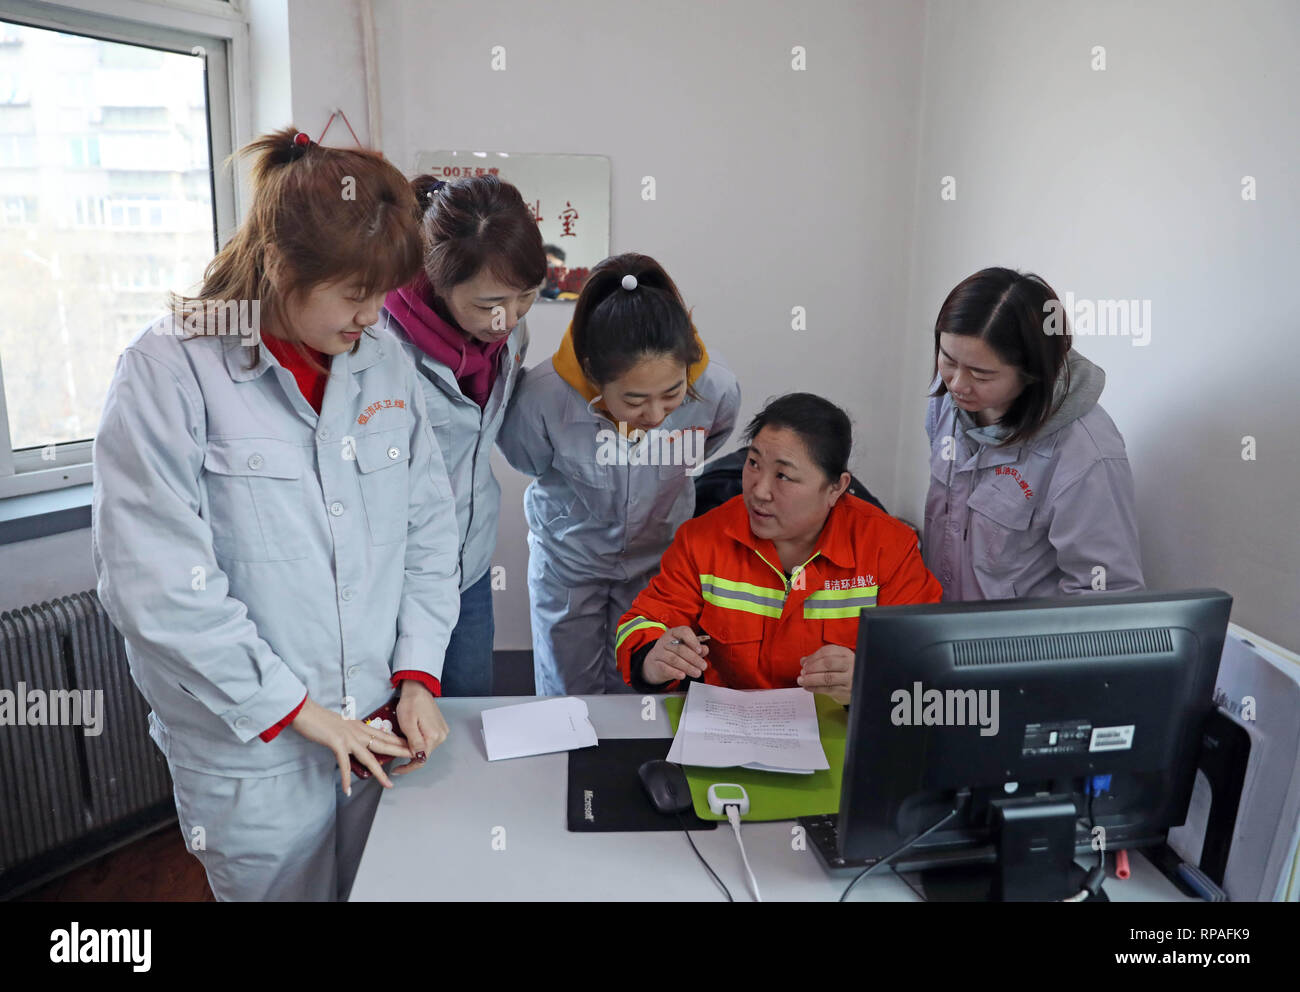 (190221) -- ANSHAN, Feb. 21, 2019 (Xinhua) -- Zhuang Yan (2nd R), deputy to the 13th National People's Congress (NPC), takes notes of her colleagues' suggestions in Anshan, northeast China's Liaoning Province, Feb. 12, 2019. Zhuang Yan, 47, is a sanitation worker with Hengjie Sanitation Company in the Lishan District of Anshan city.     In addition to performing well in her own work, Zhuang always thinks about how to better play her role as an NPC deputy.      Whenever she goes to a northern city, Zhuang pays much attention to local curbs and their corrosion degree. Based on her research, Zhua - Stock Image